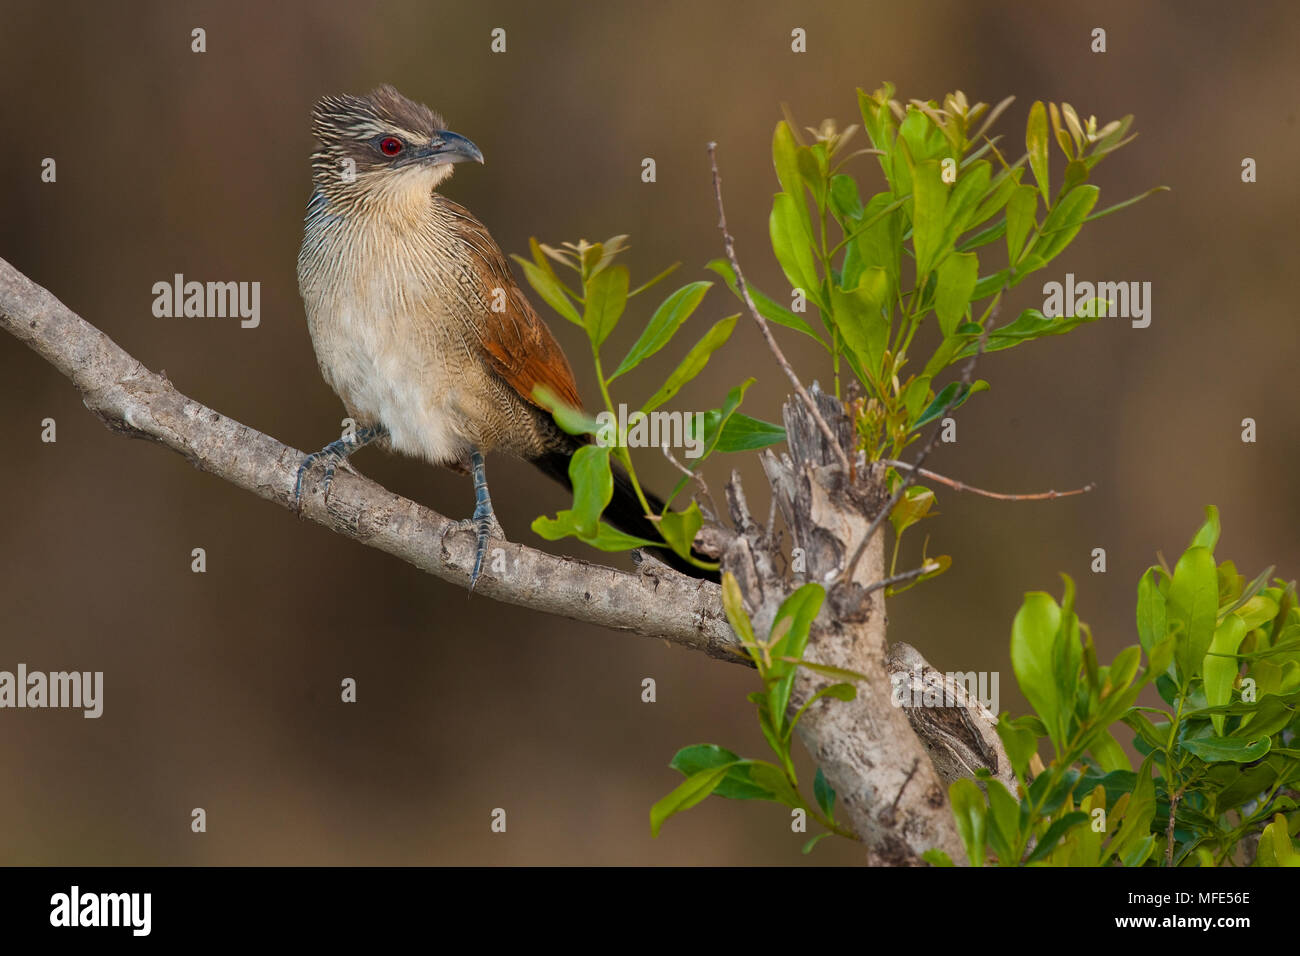 White-browed coucal in Kenya's Masai Mara; Centropus superciliosus. - Stock Image